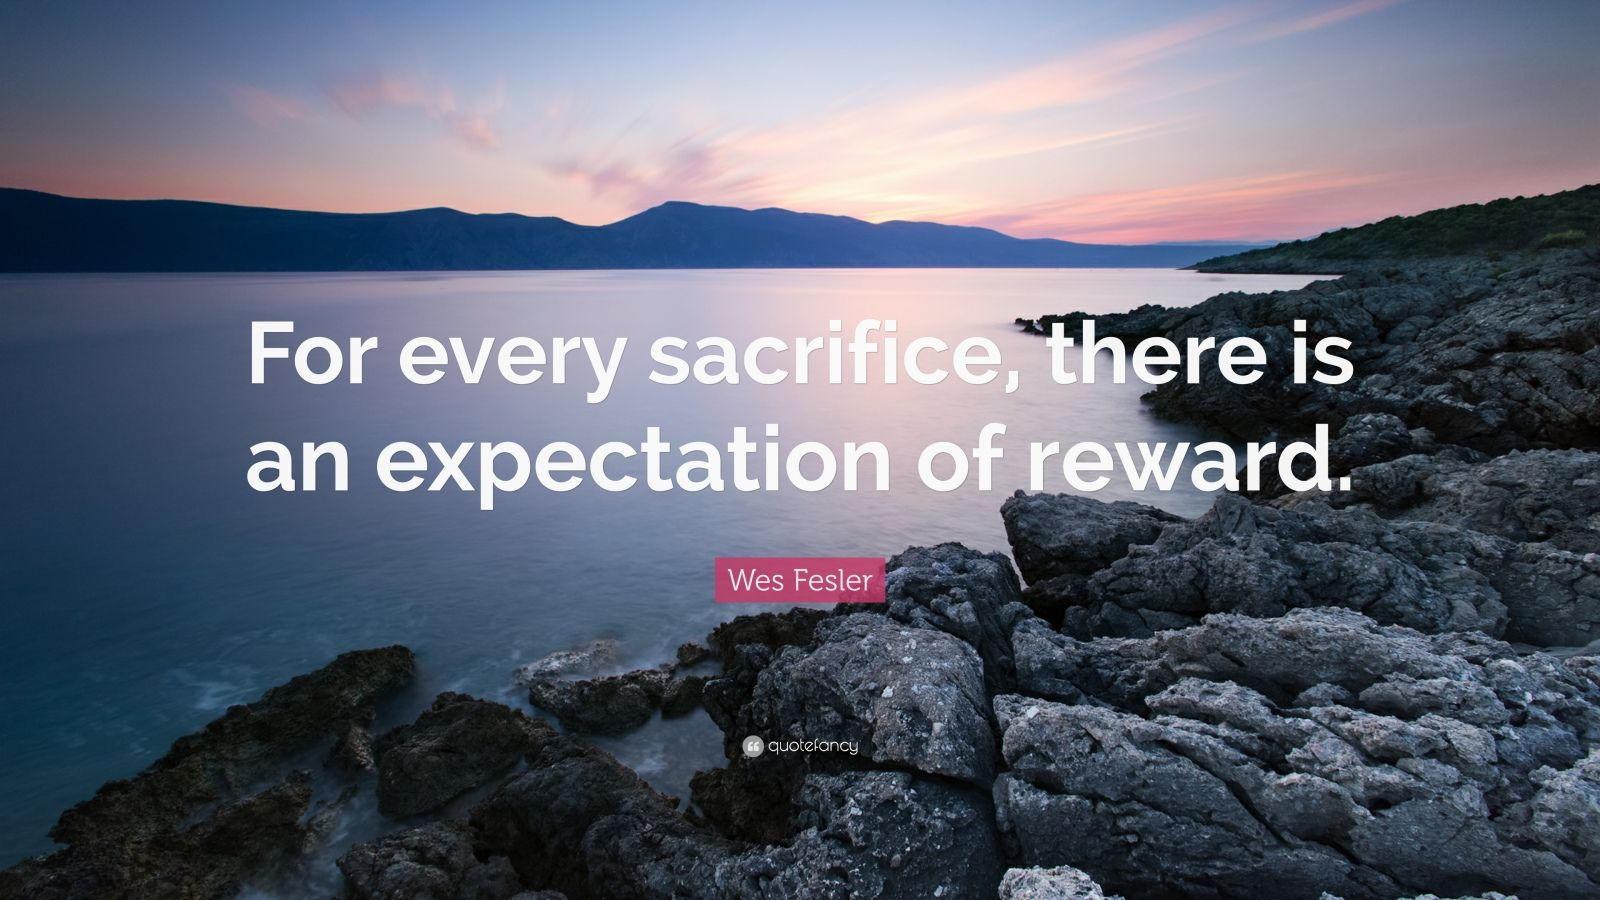 """Wes Fesler Quote: """"For every sacrifice, there is an expectation of reward."""""""